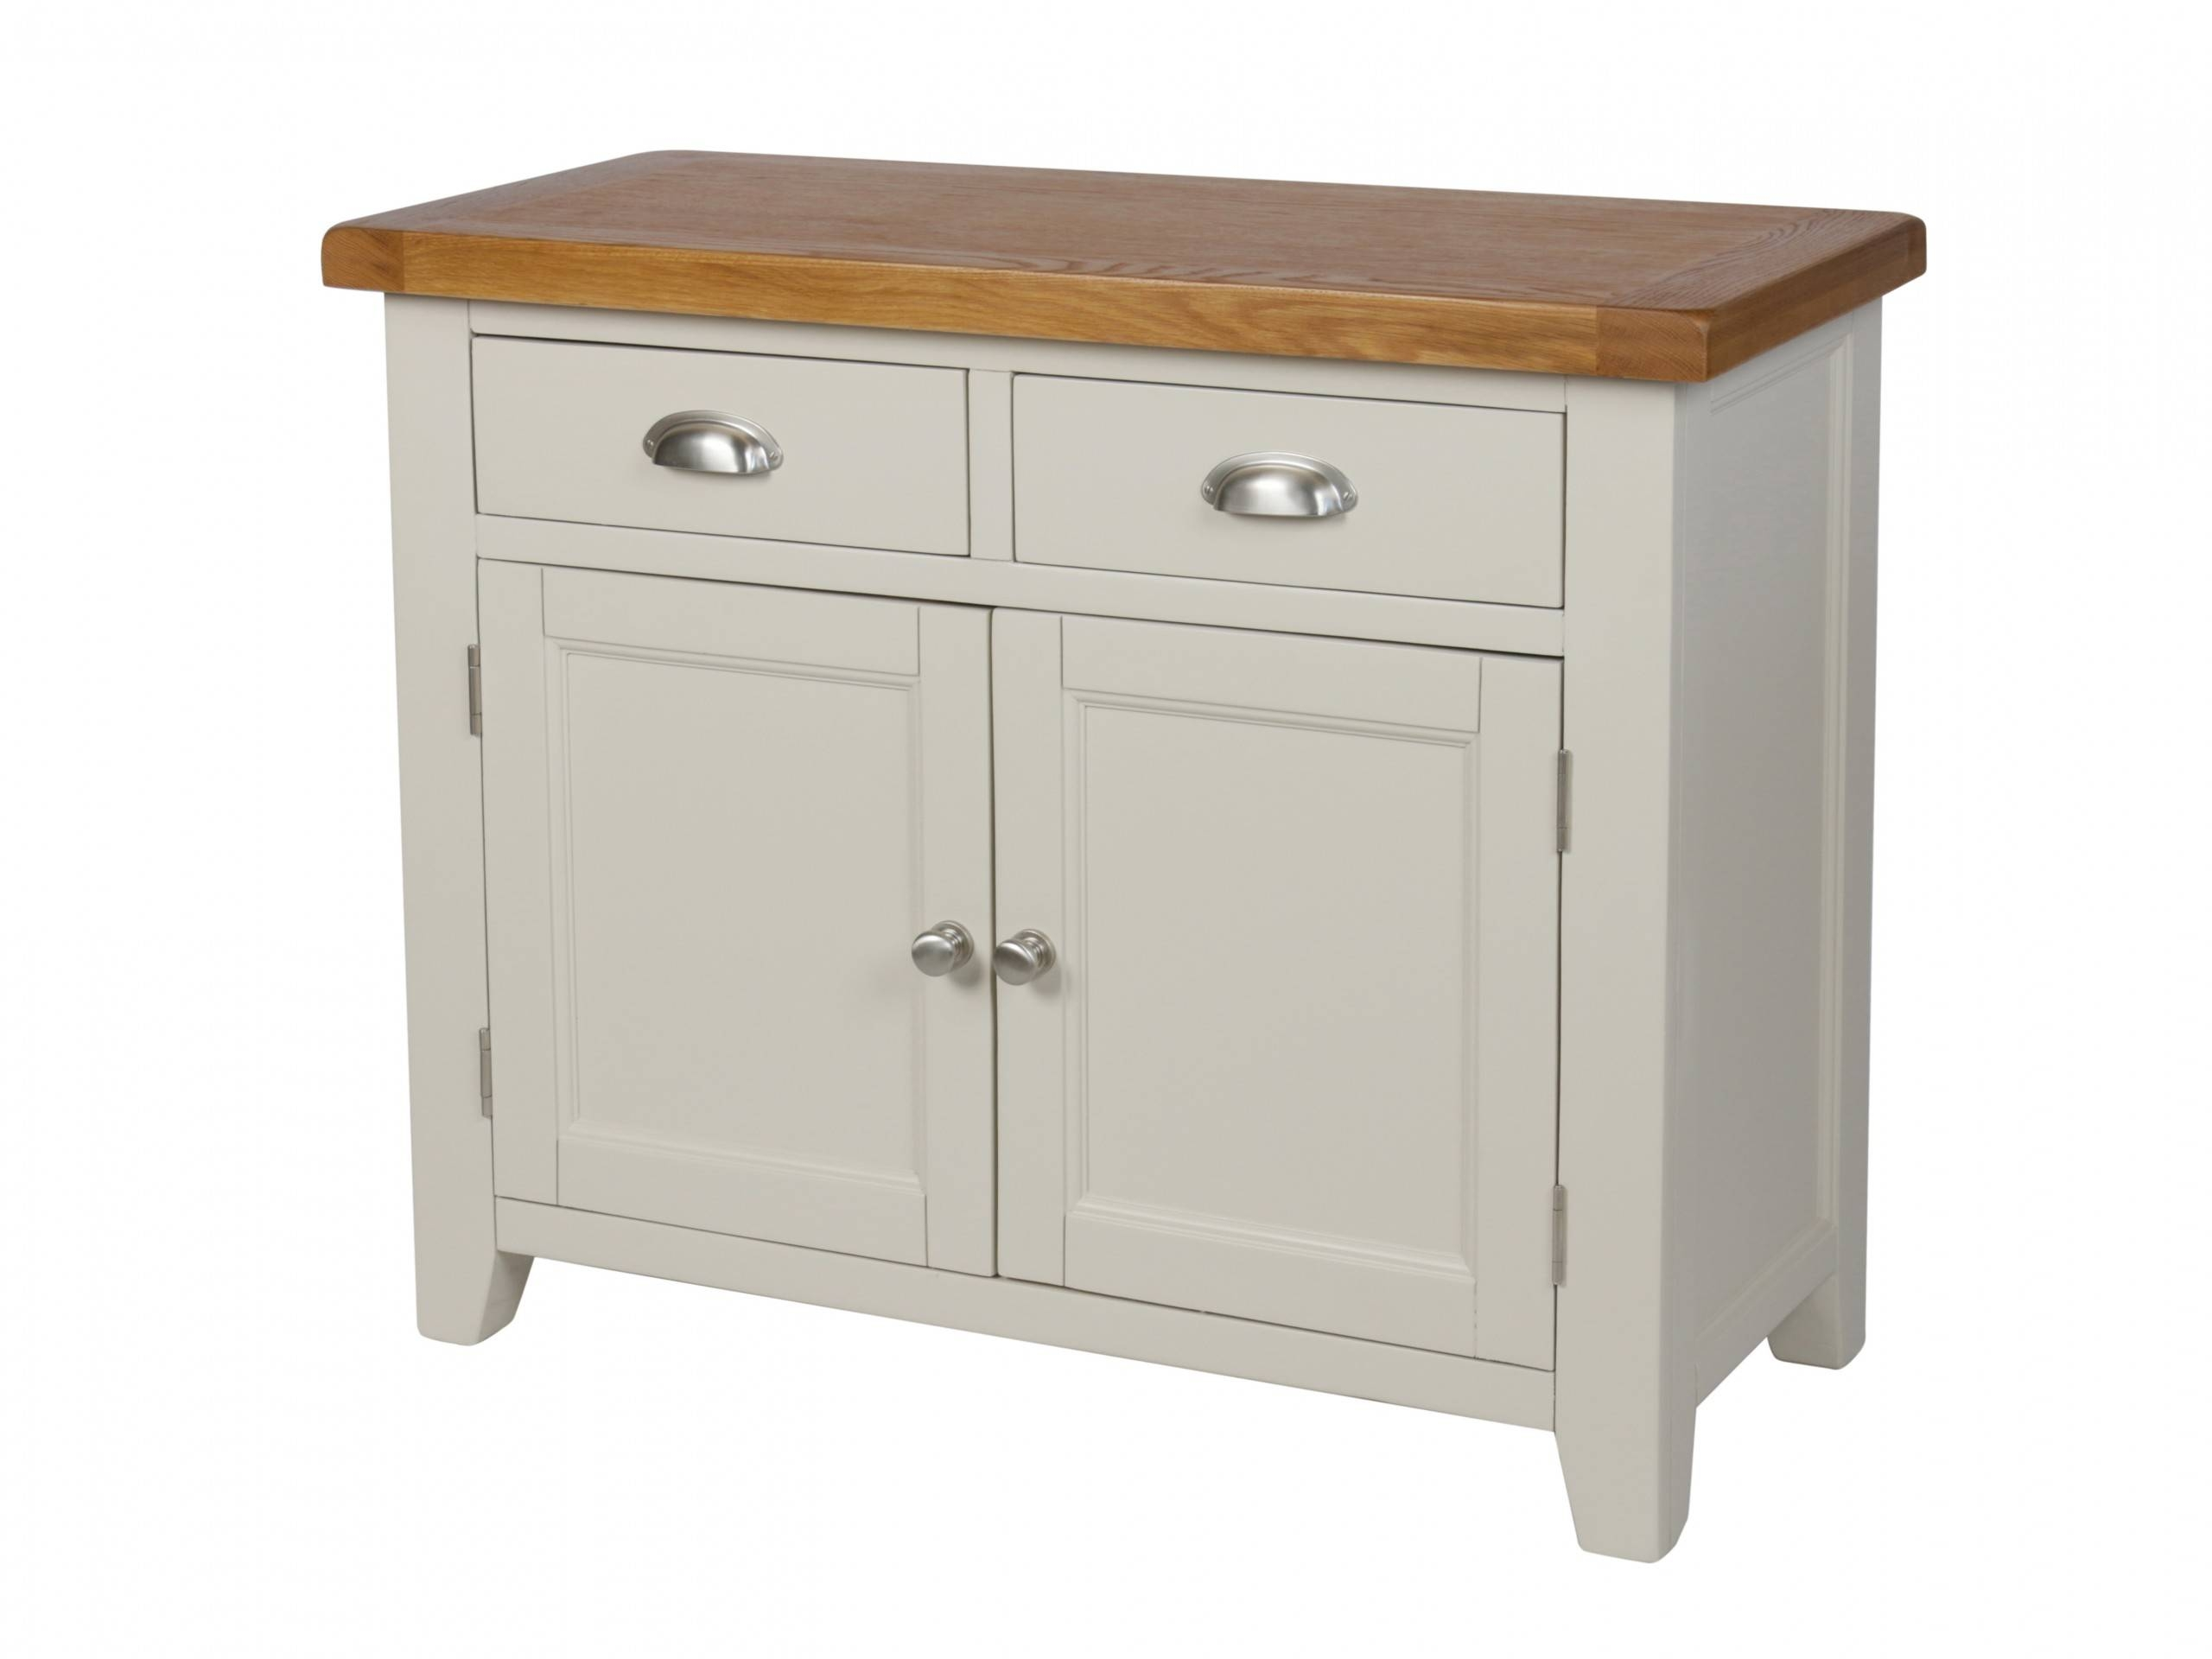 Country Cottage 100Cm Grey Painted Oak Sideboard Intended For Grey Painted Sideboards (View 11 of 15)